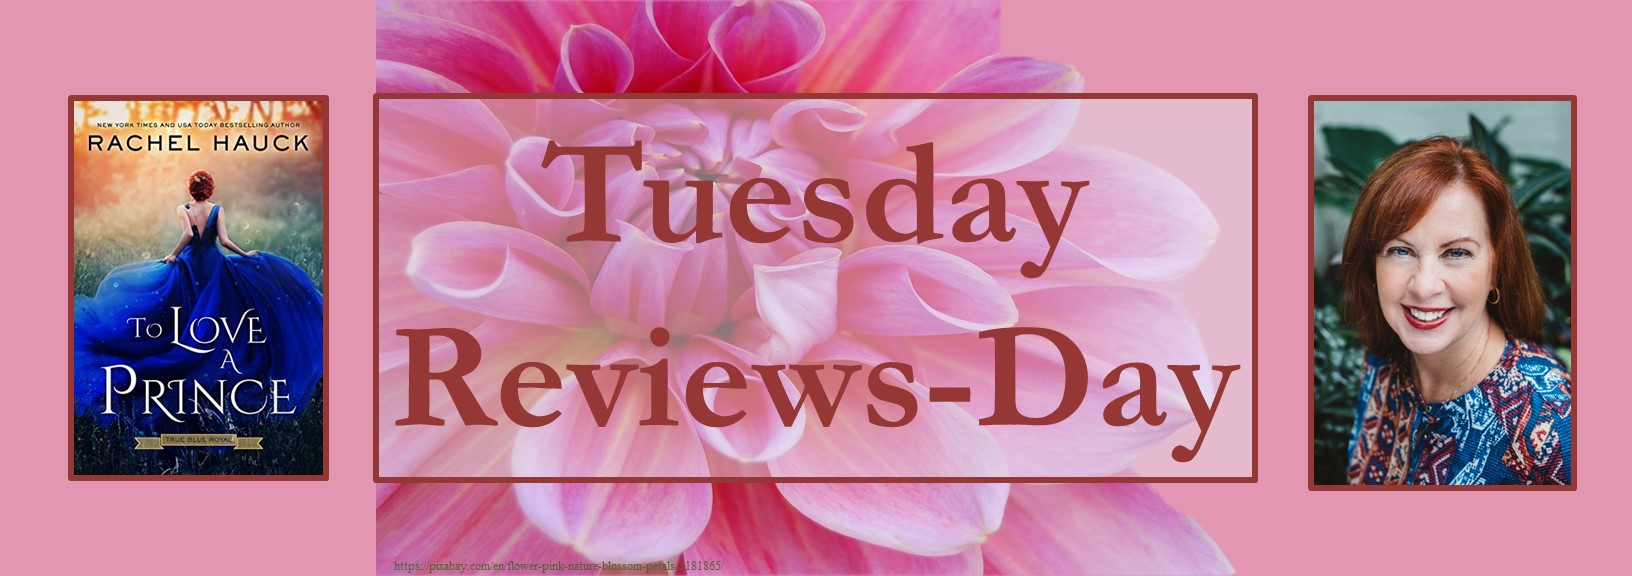 082520 - to love a prince - tuesday reviews day banner